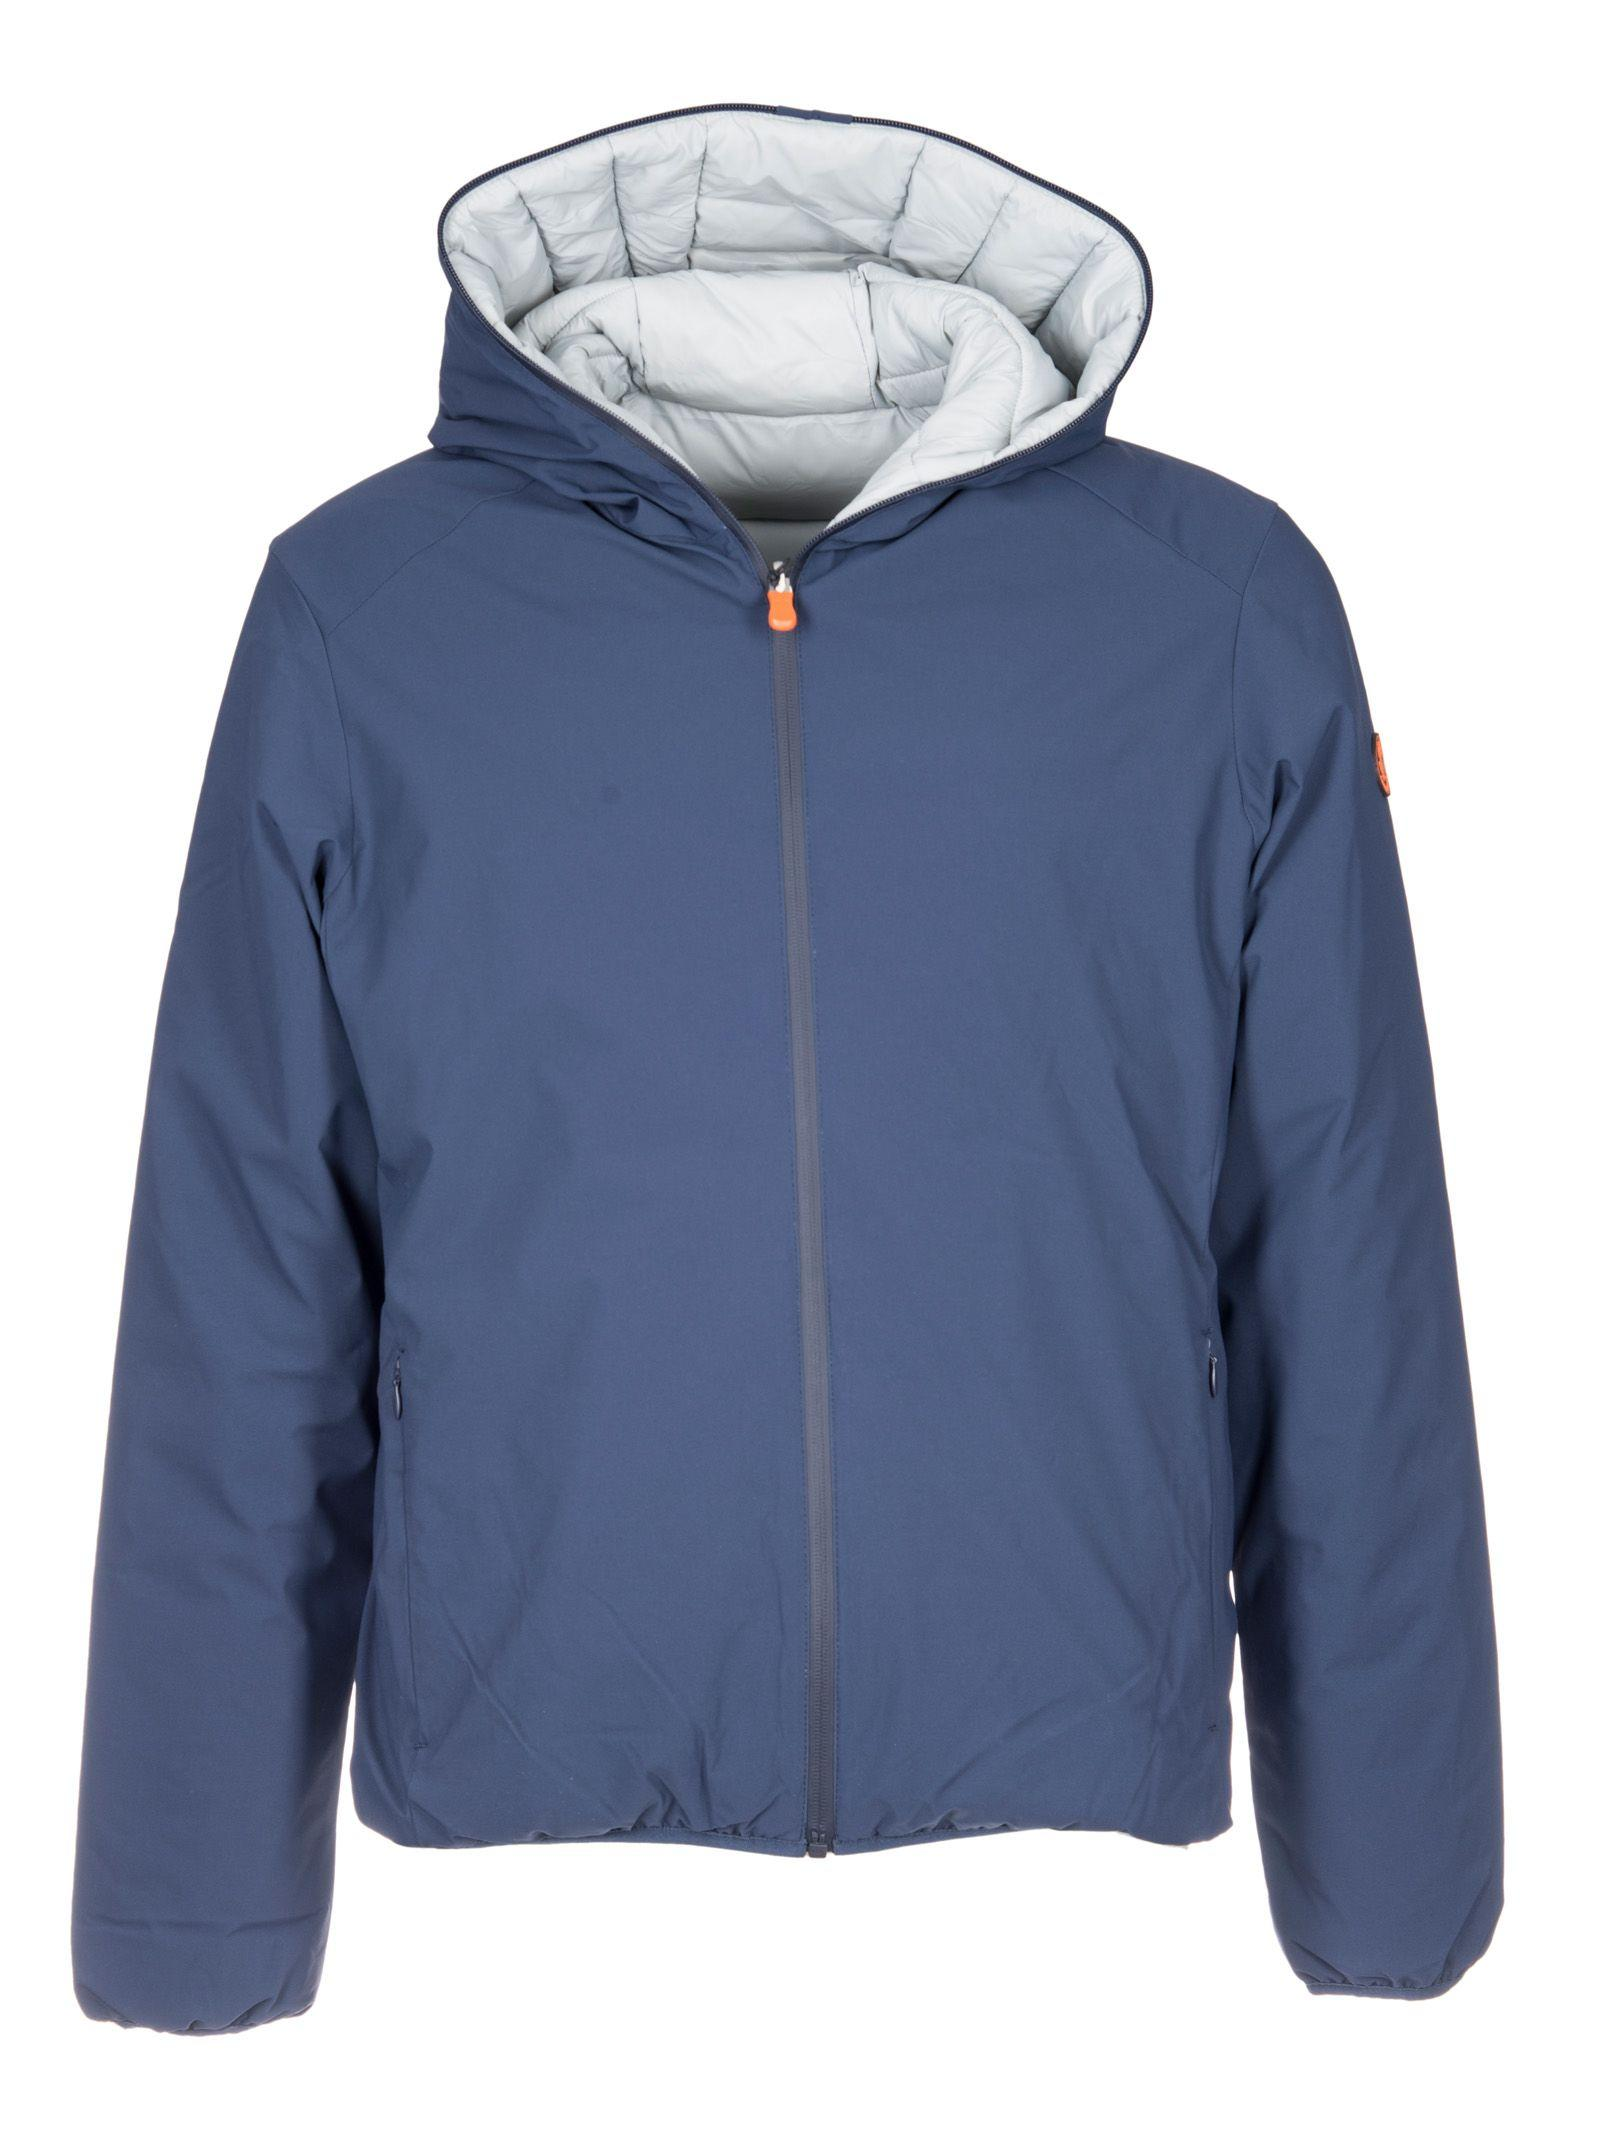 Save The Duck Zip-up Jacket In Blue